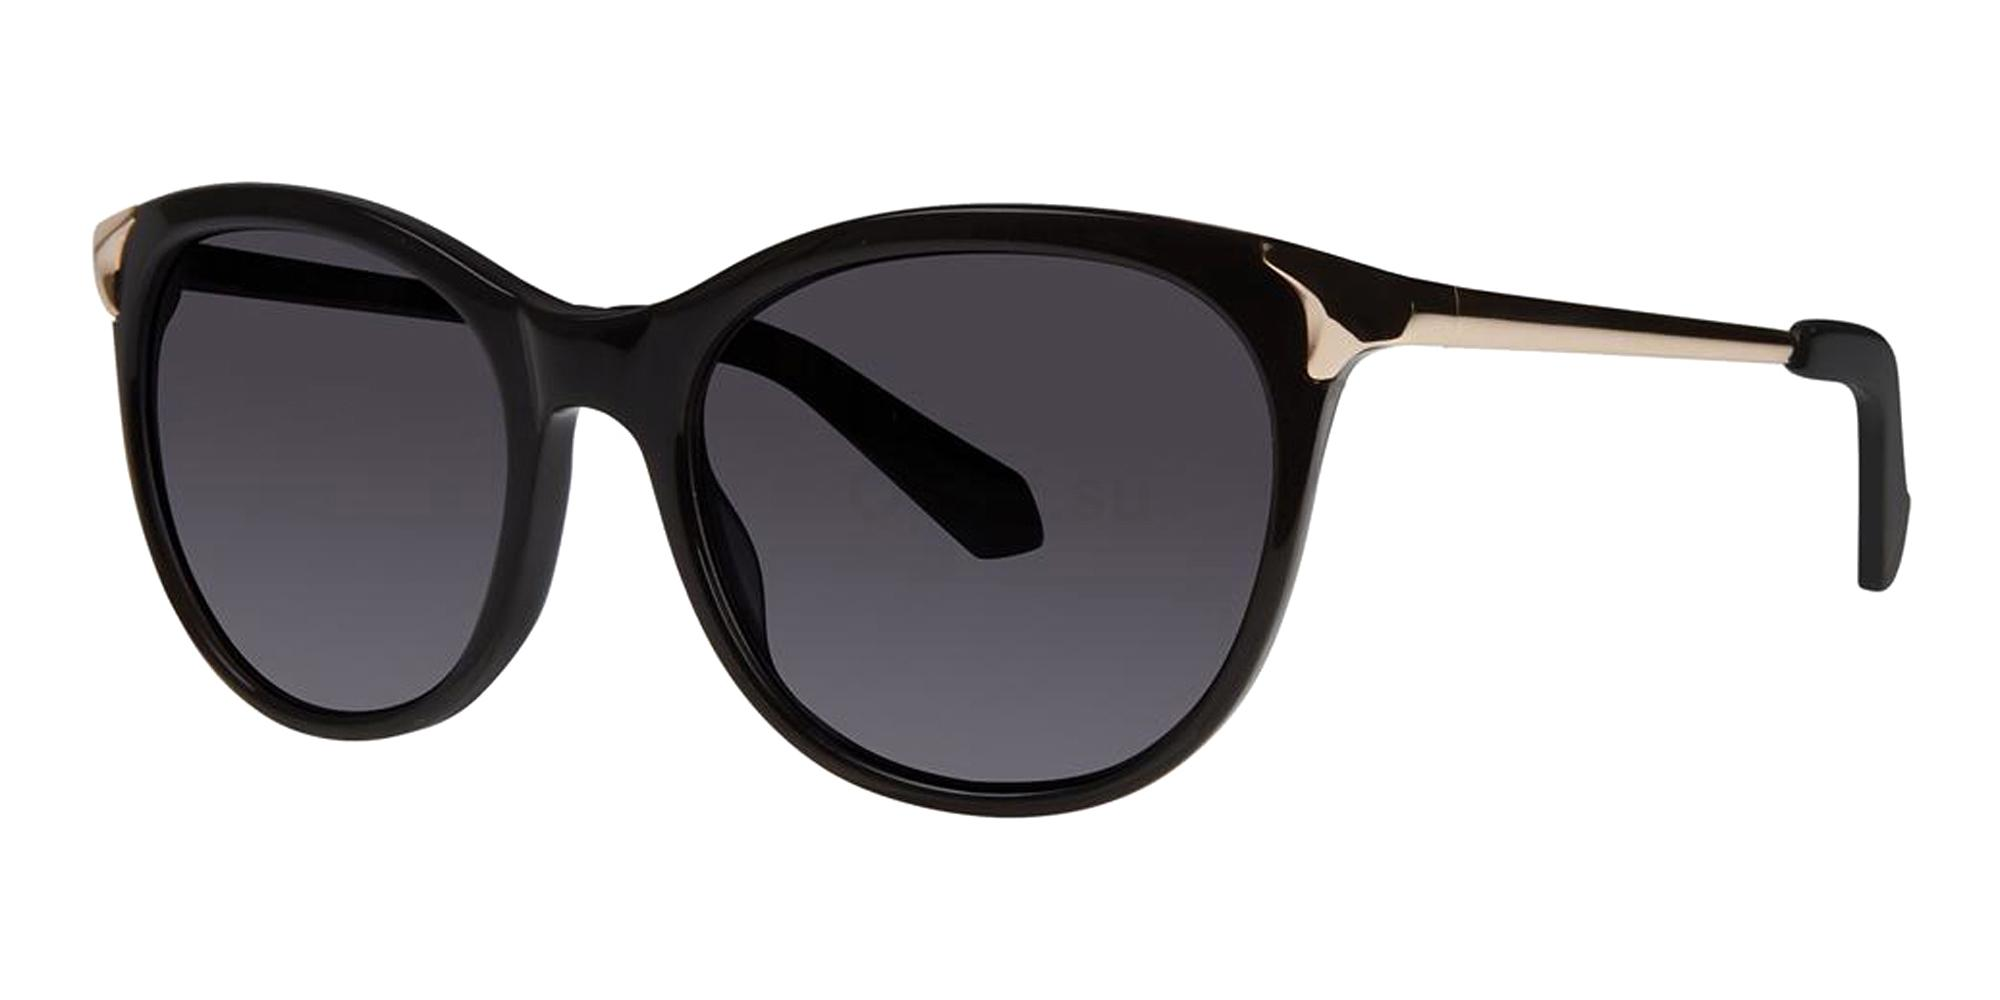 Black JOHANNA Sunglasses, Zac Posen